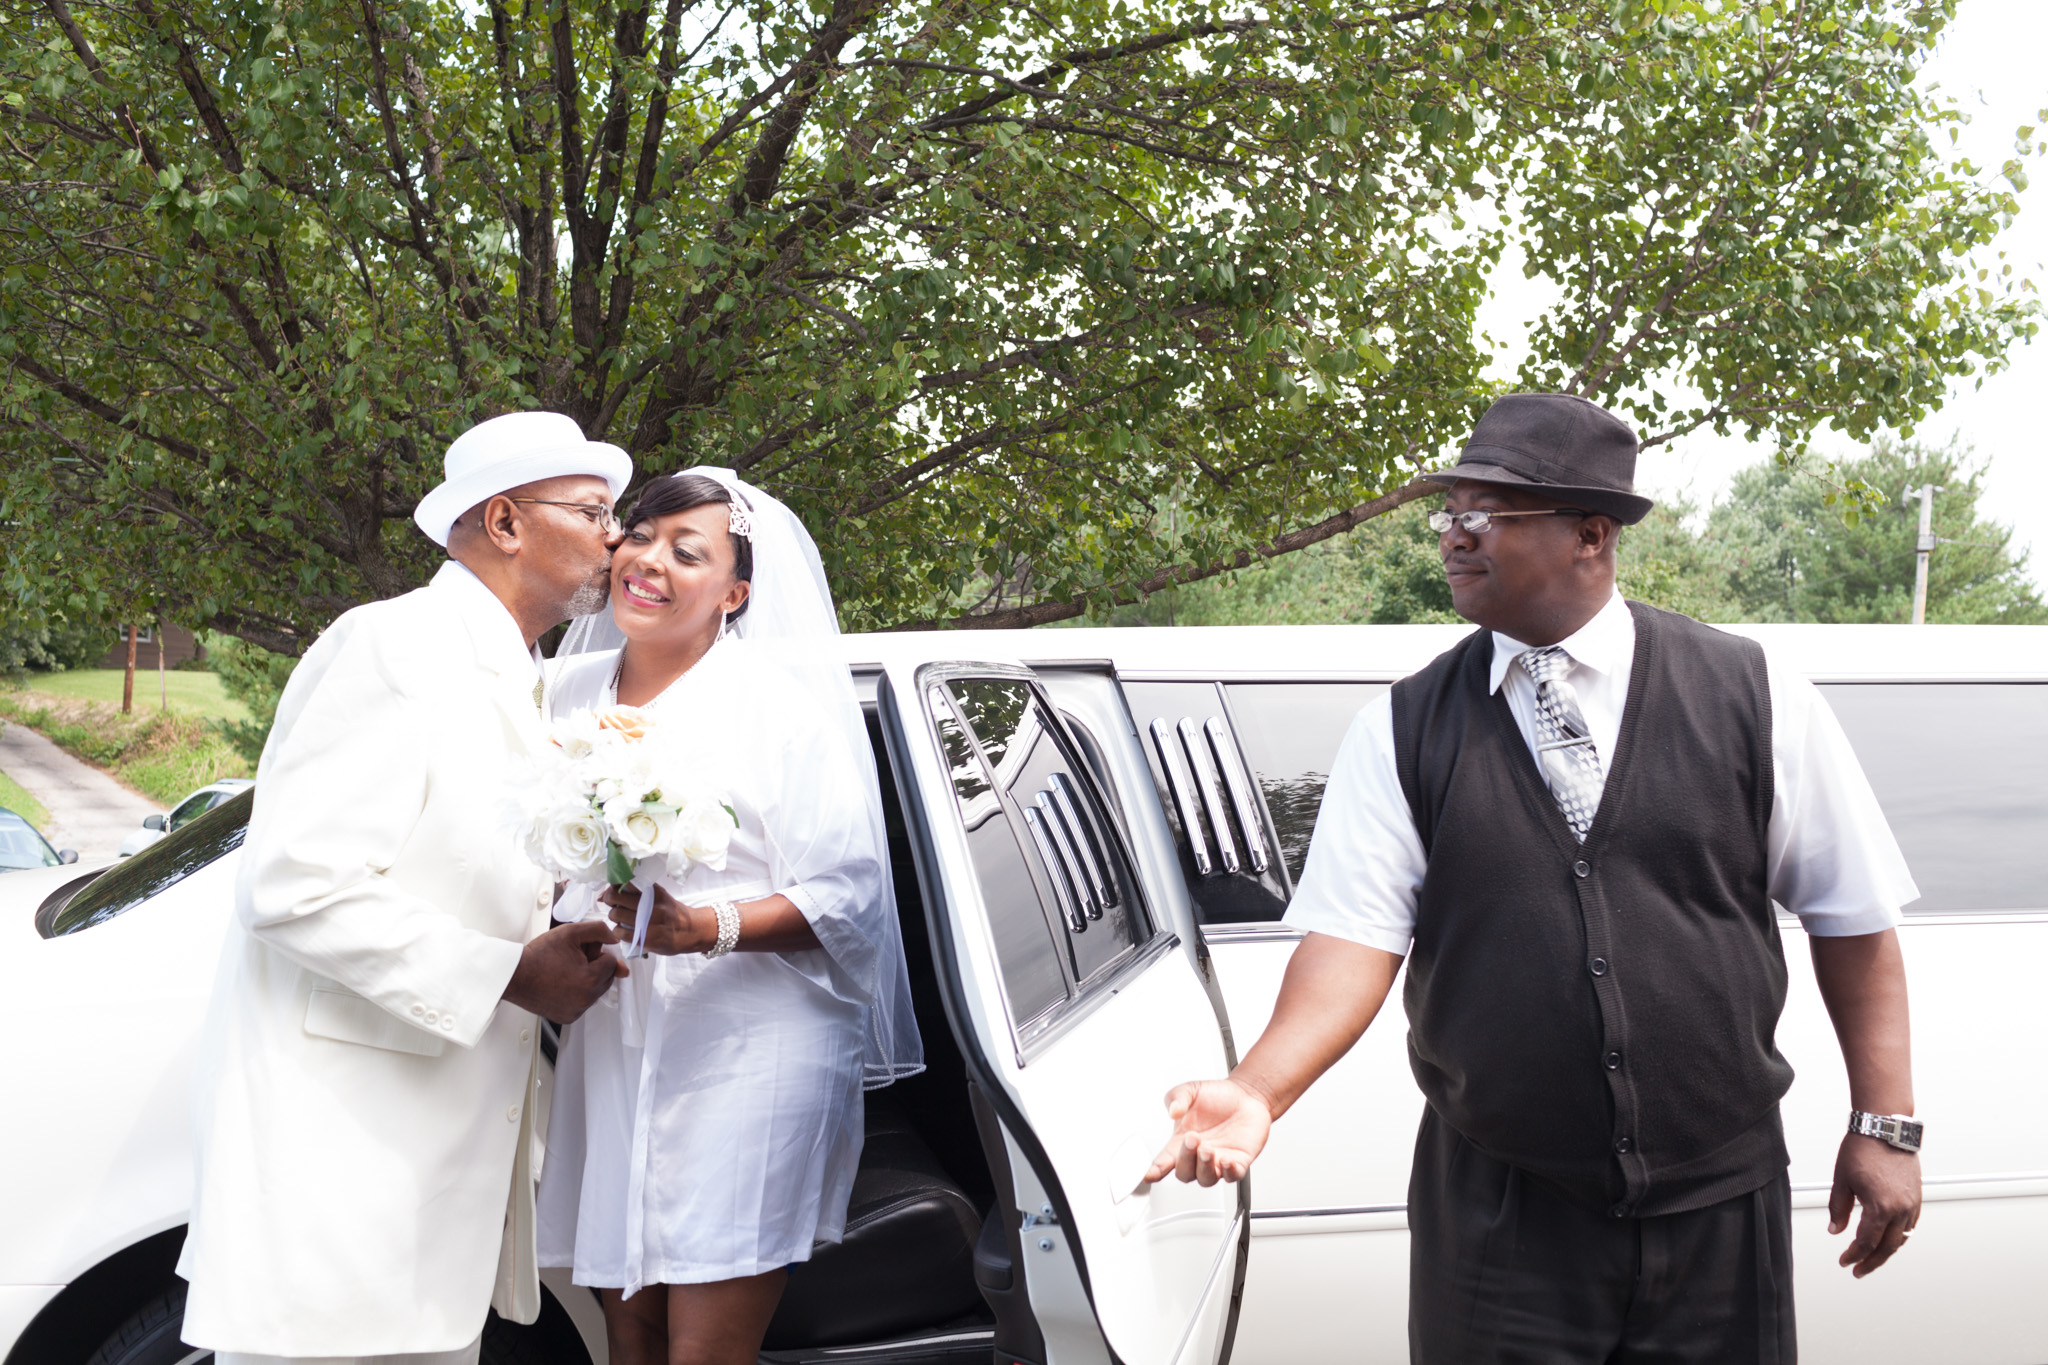 Crystal arriving in style. Her handsome father gives her a little kiss for good luck.